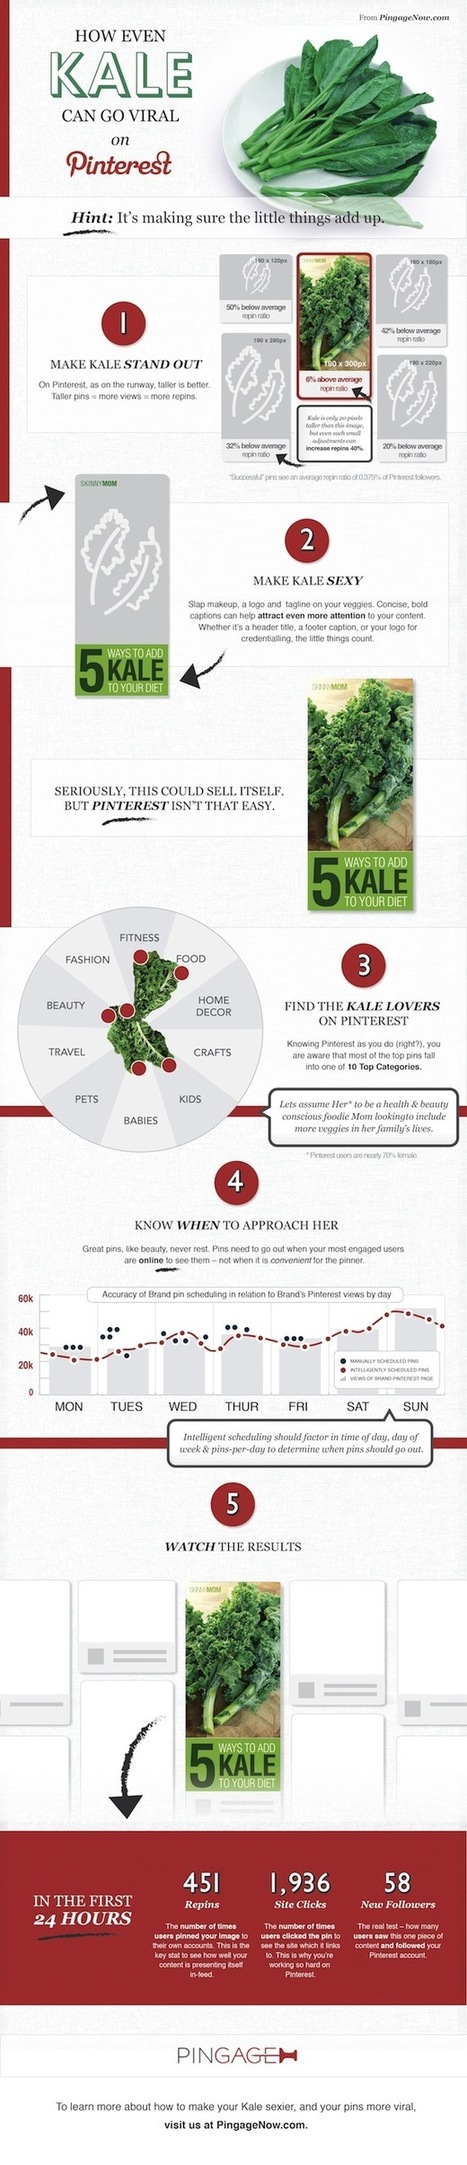 Even Kale Can Go Viral On Pinterest, And Here's How [Infographic] - Social News Daily | Pinterest | Scoop.it